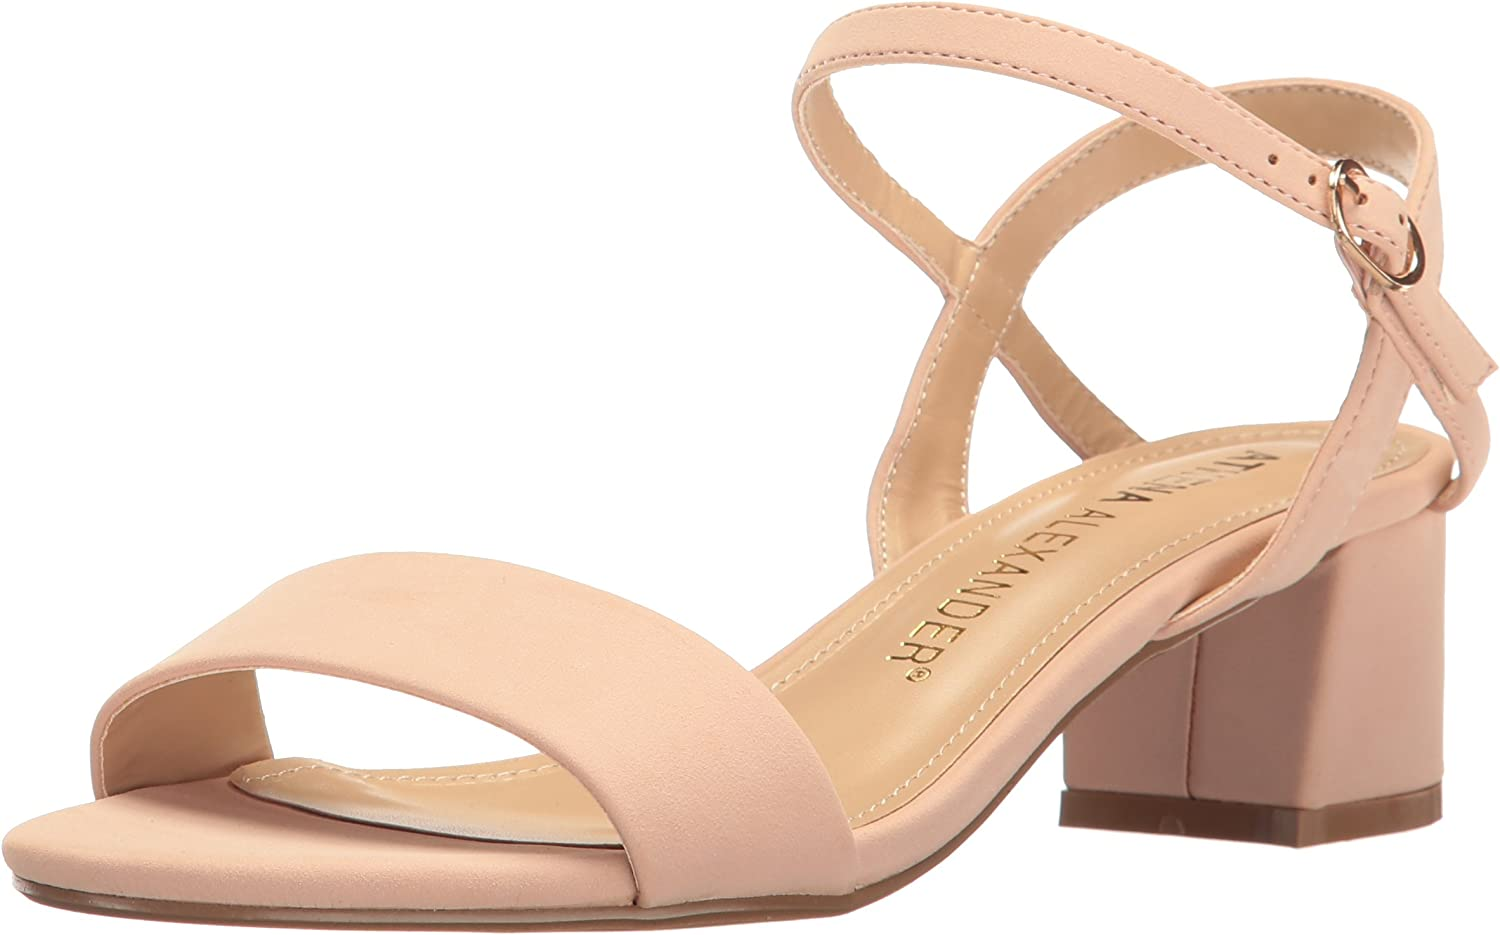 Athena Alexander Womens Jacoba Dress Sandal